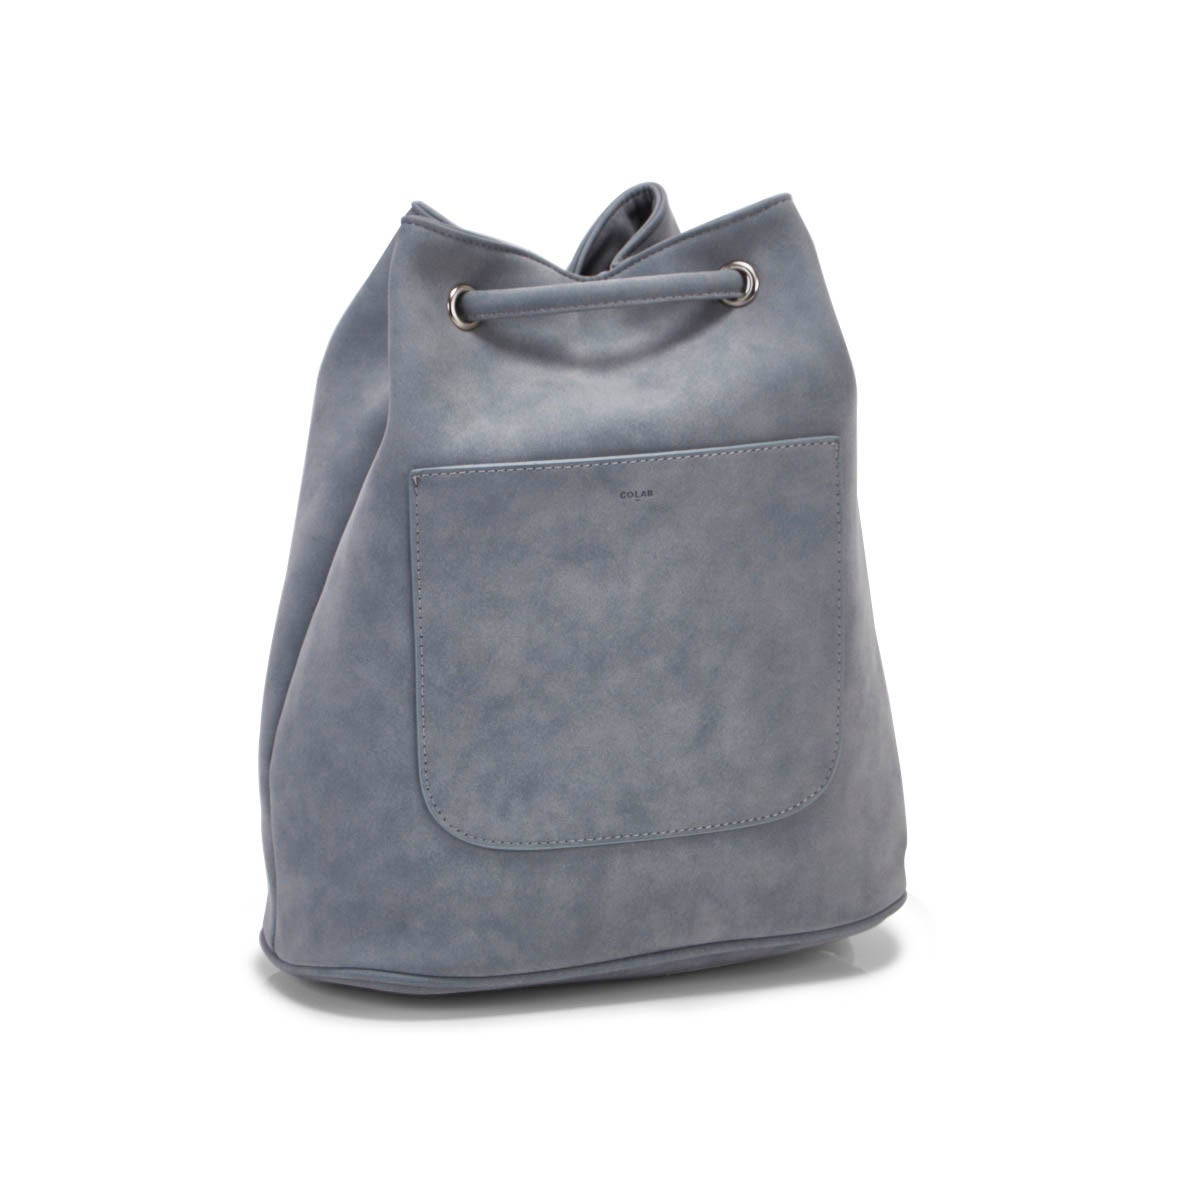 Lds mist blue drawstring backpack